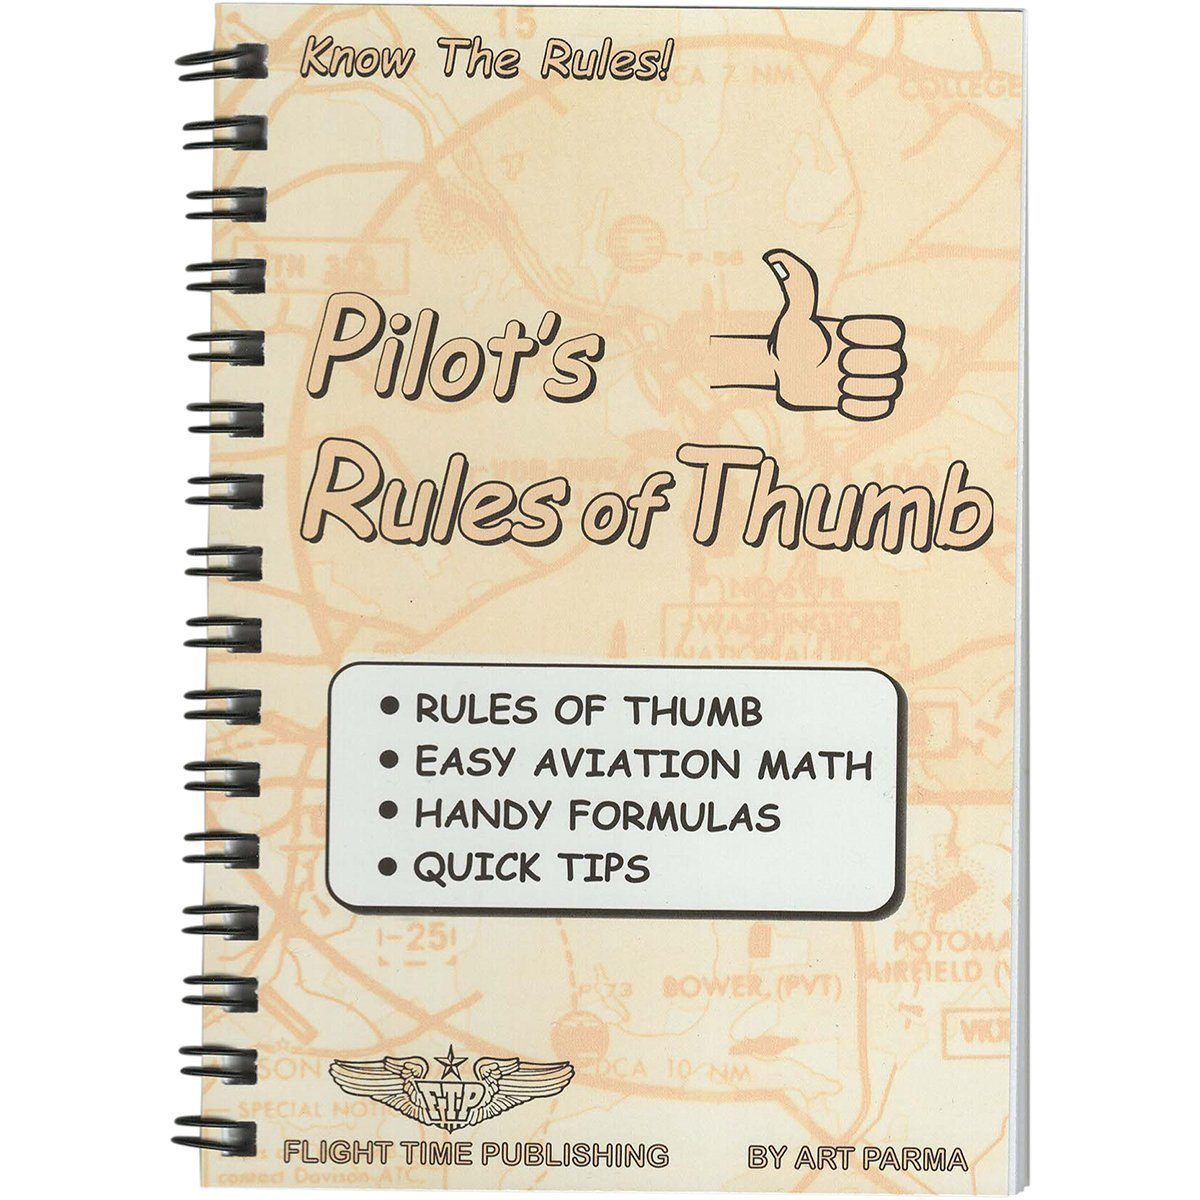 Pilot's Rules of Thumb (Art Parma)